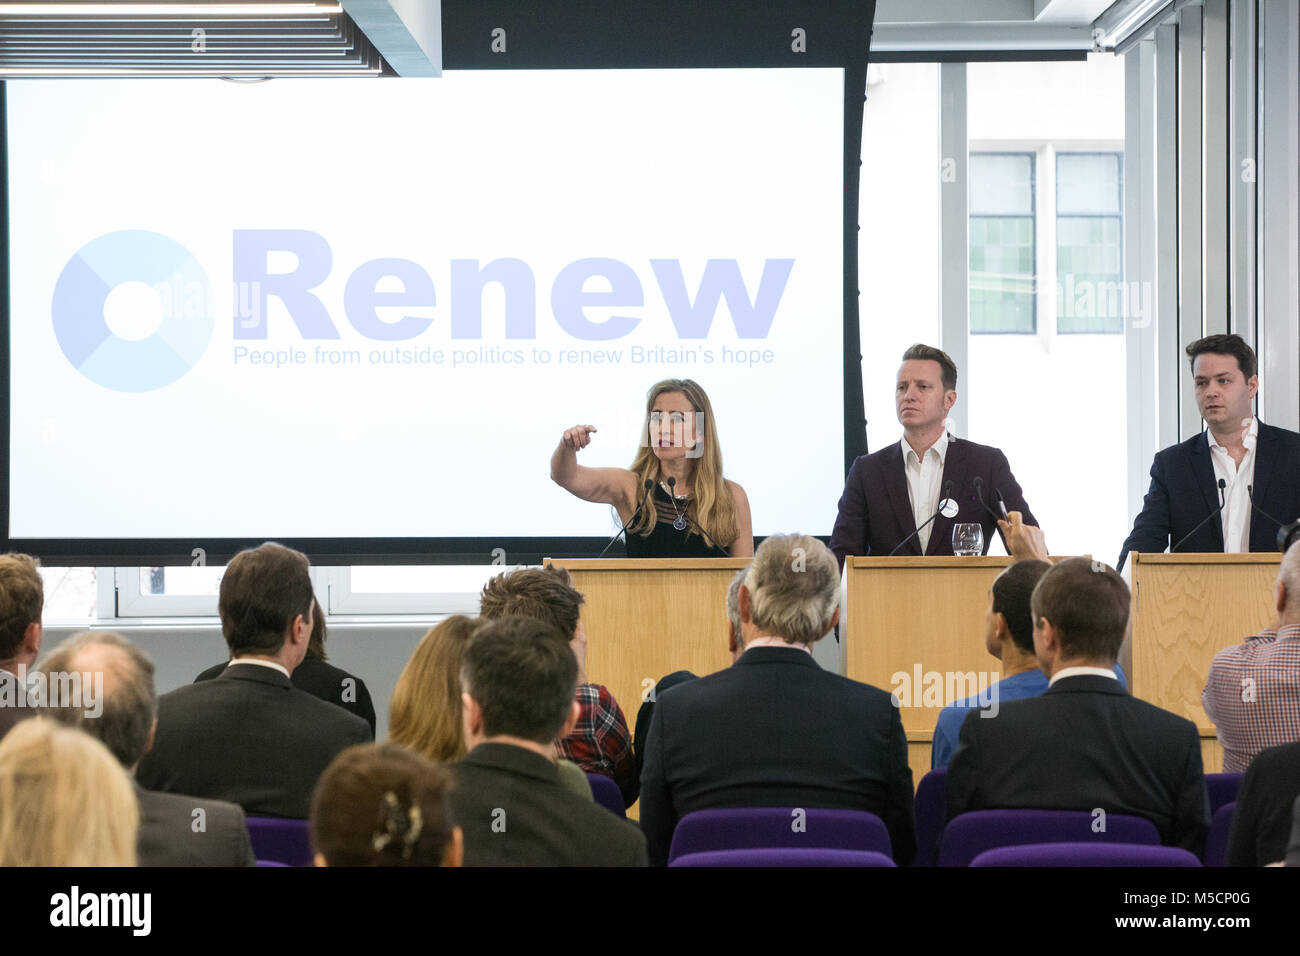 London, UK. 19th February, 2018. Sandra Khadhouri, Head of Communications, takes questions at the launch of the - Stock Image